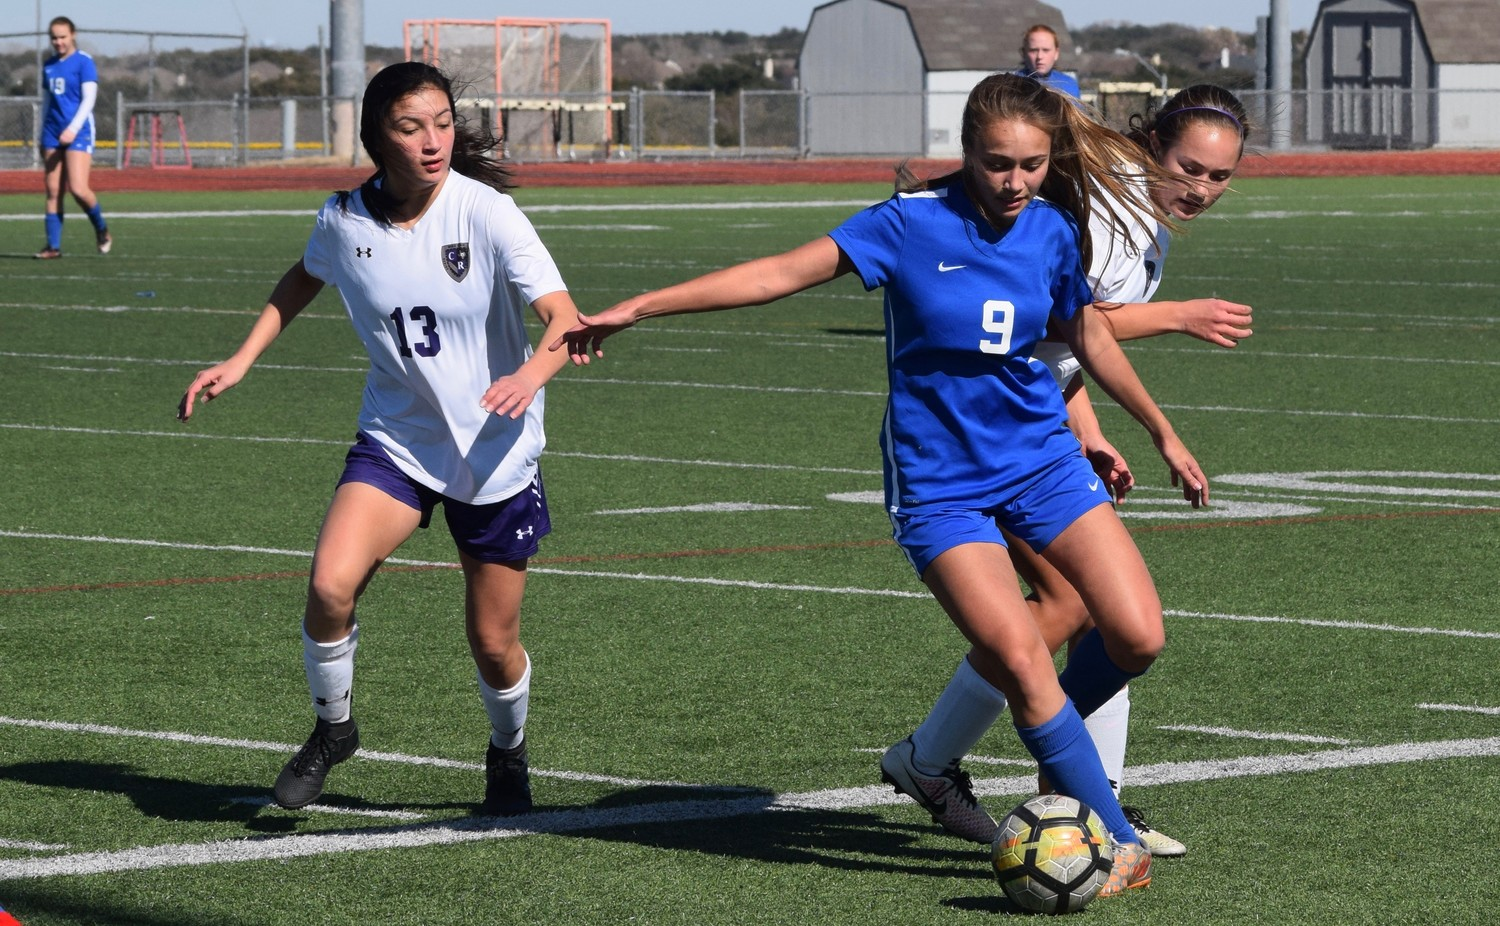 Senior Haley Clark and the Leander girls' soccer team have scored 28 goals and given up just one in its first five games of the season.